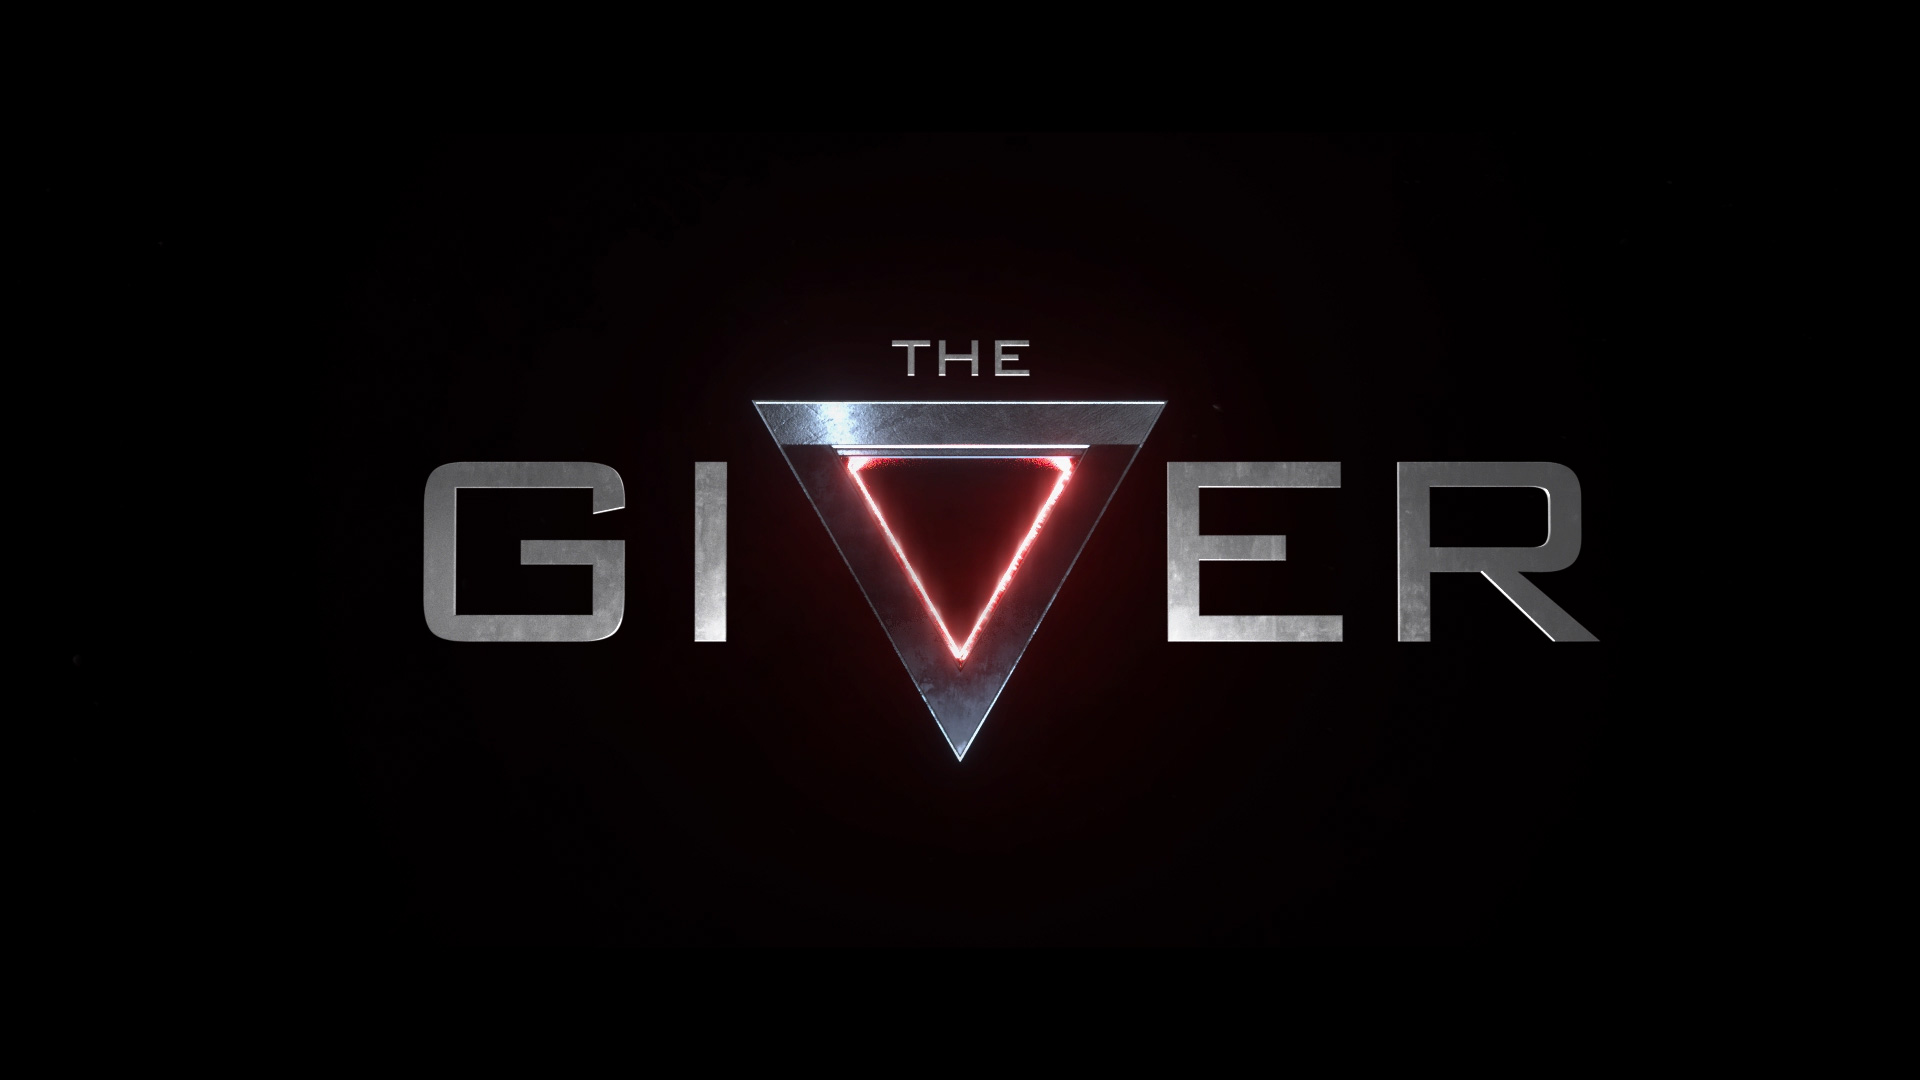 The_Giver_Final_KP (01070).jpg